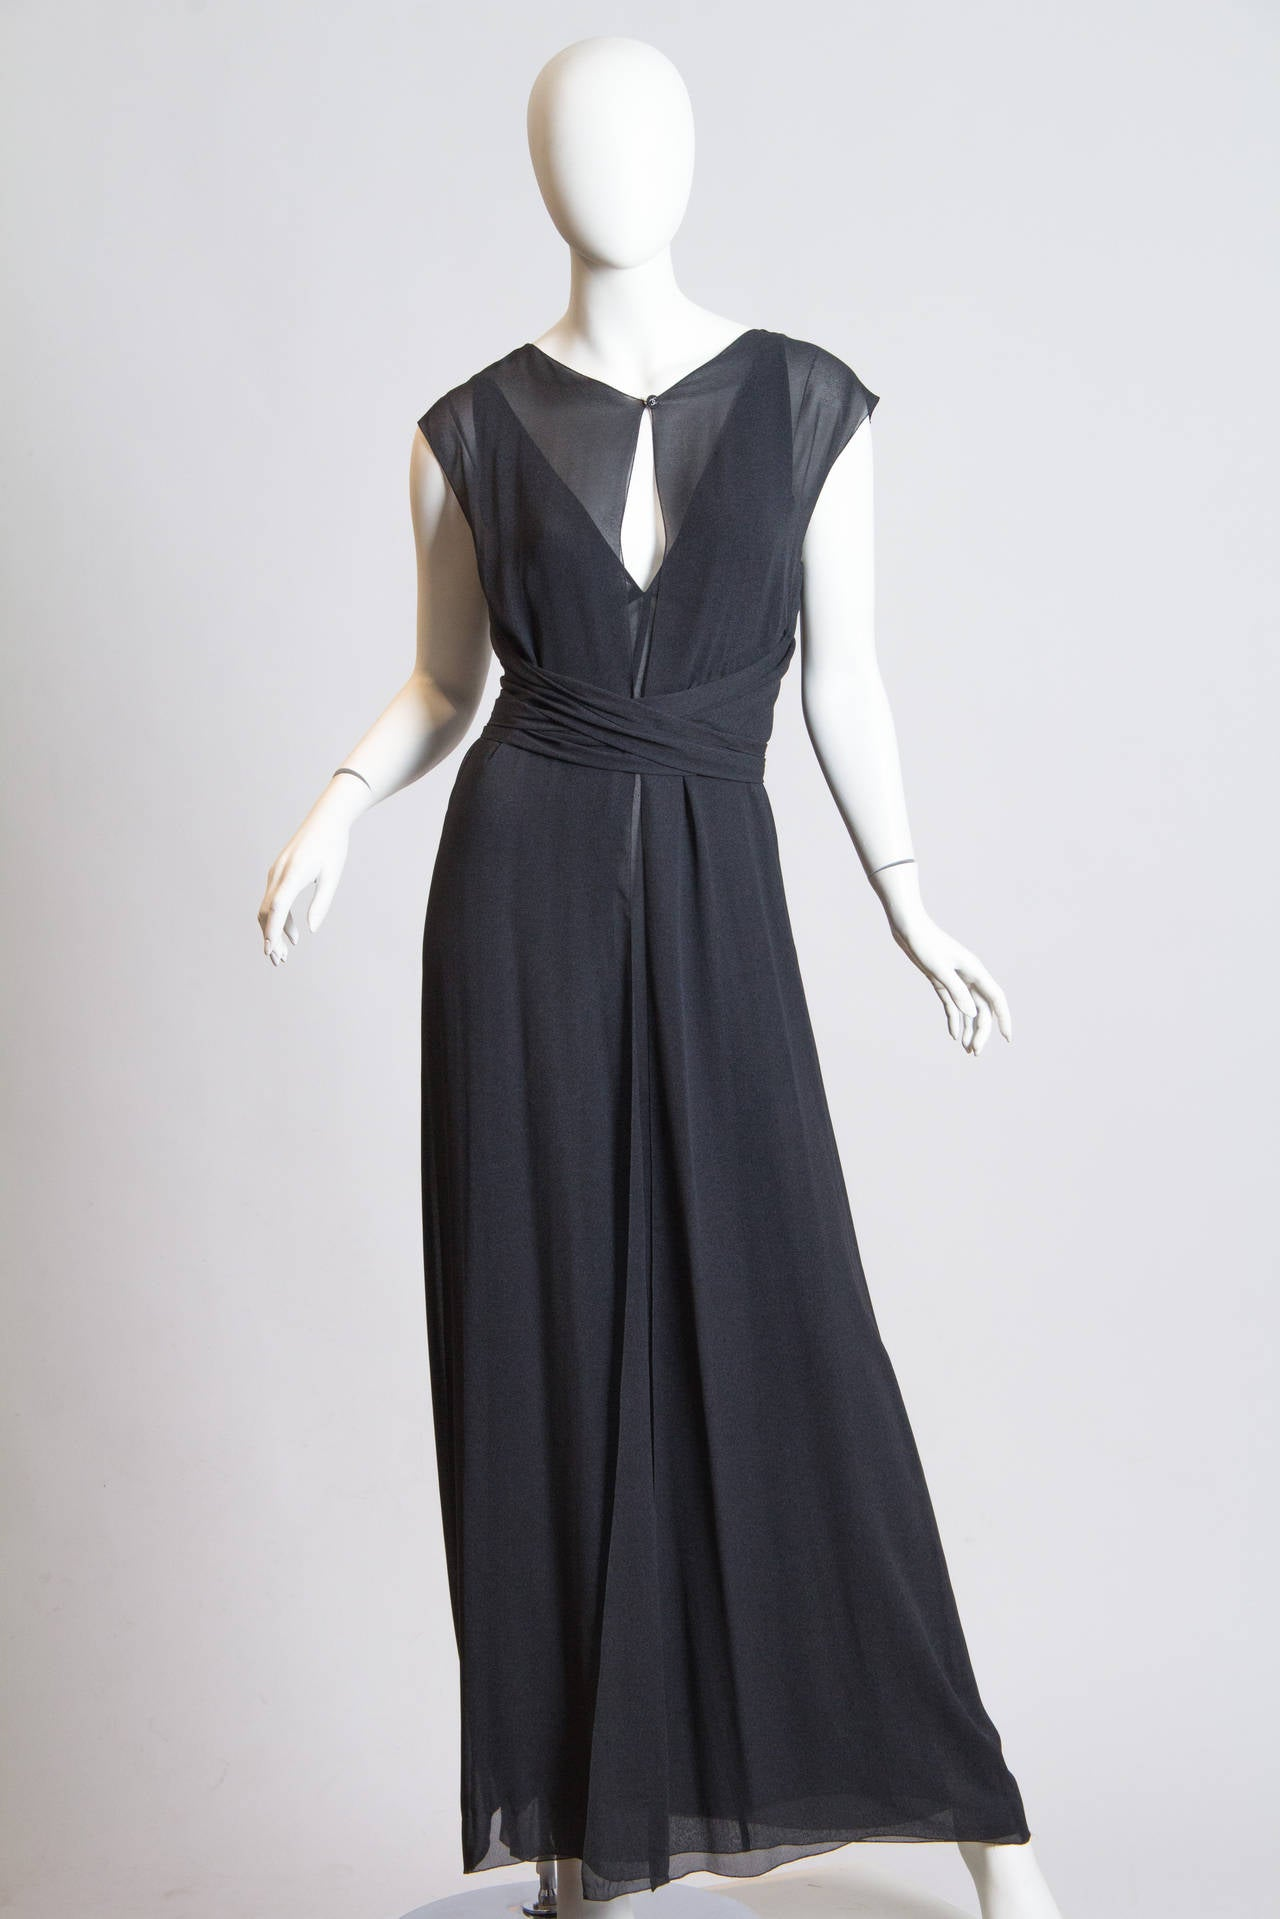 Black Slate Grey Crepe Dress from Chanel For Sale